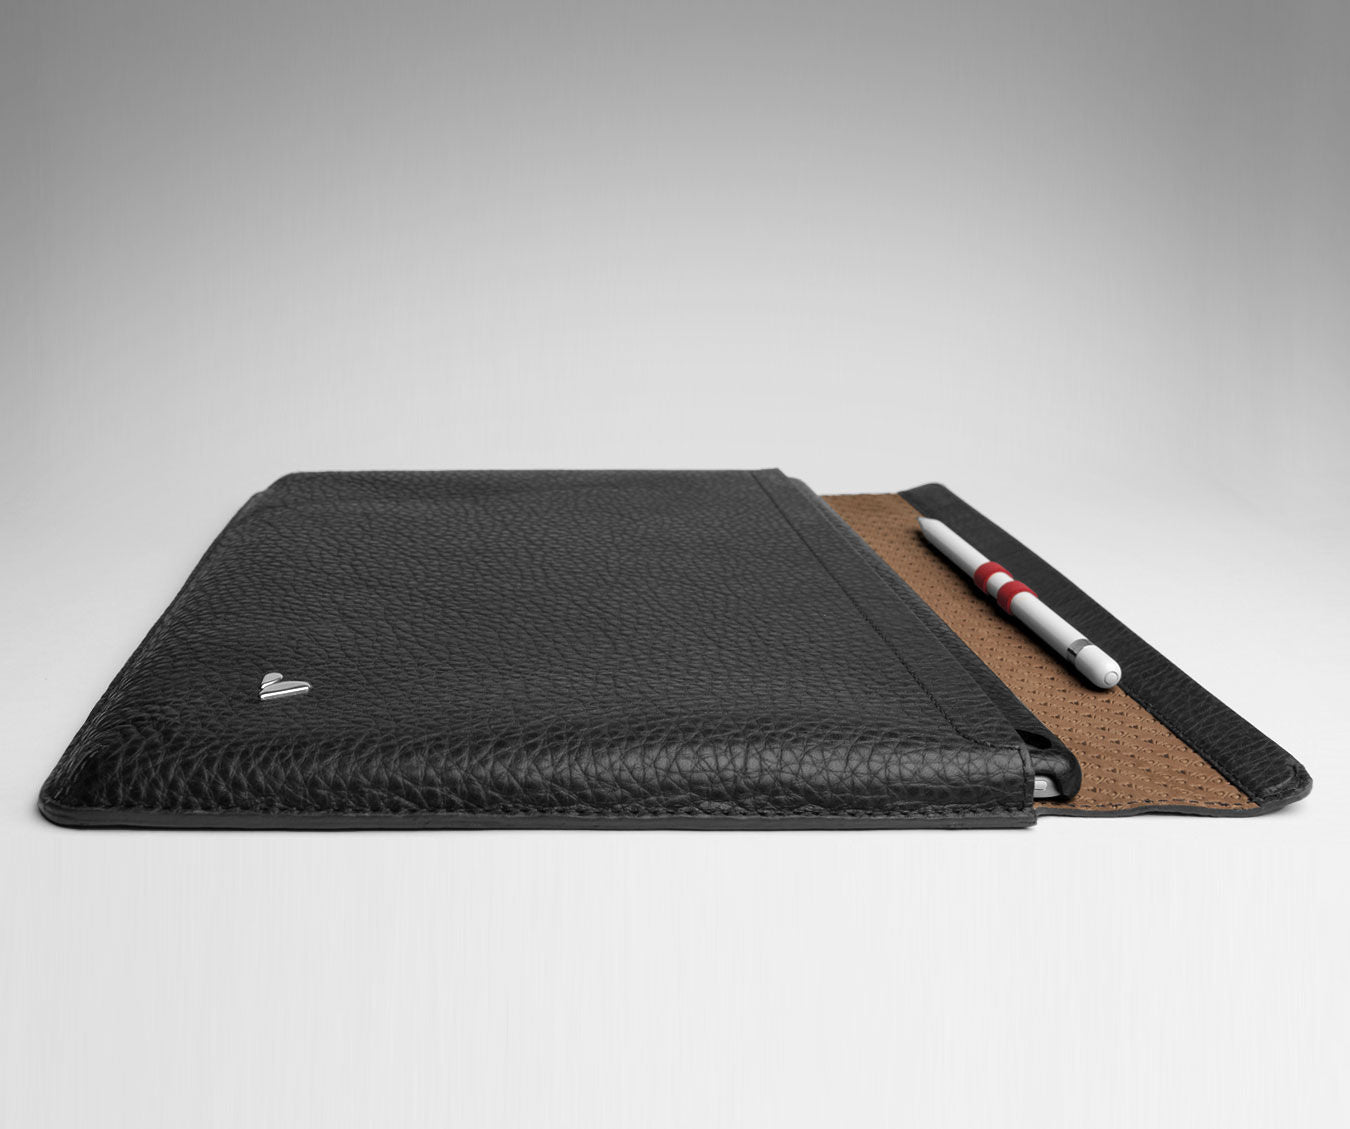 leather sleeve for 12.9 inch ipad pro review